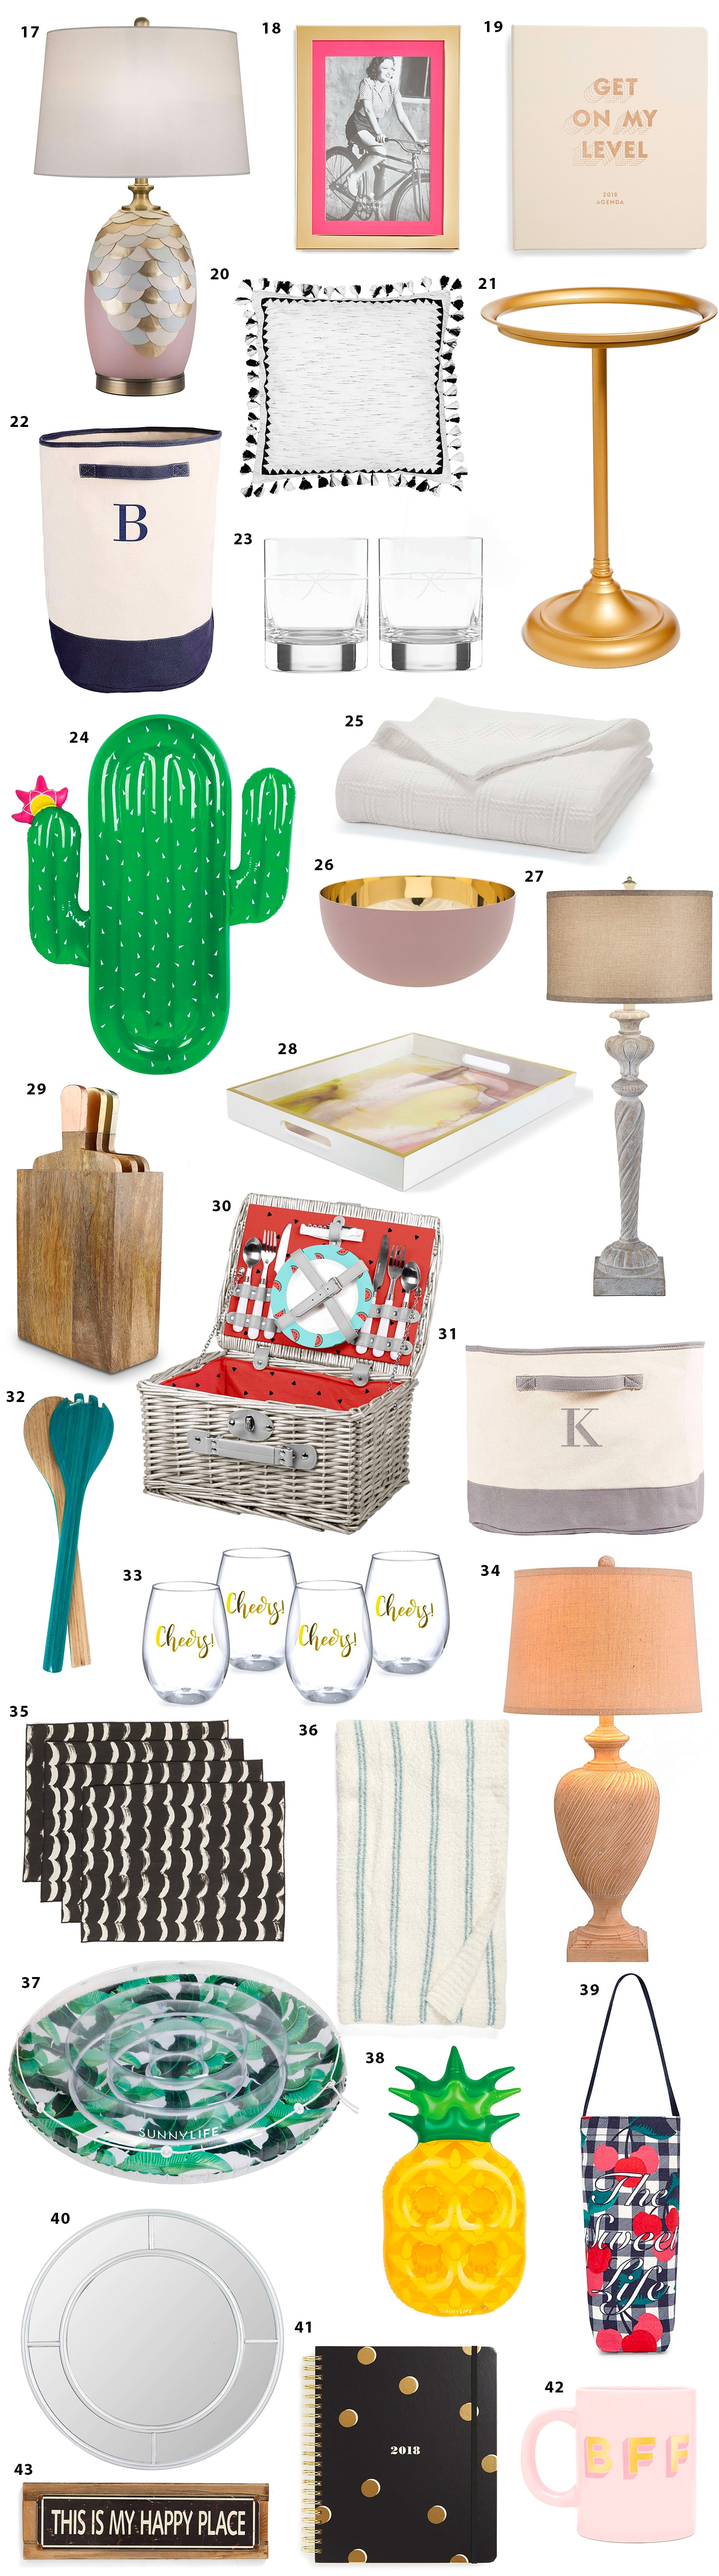 Best Home Decor Finds From The Nordstrom Summer Sale: nordstrom home decor sale